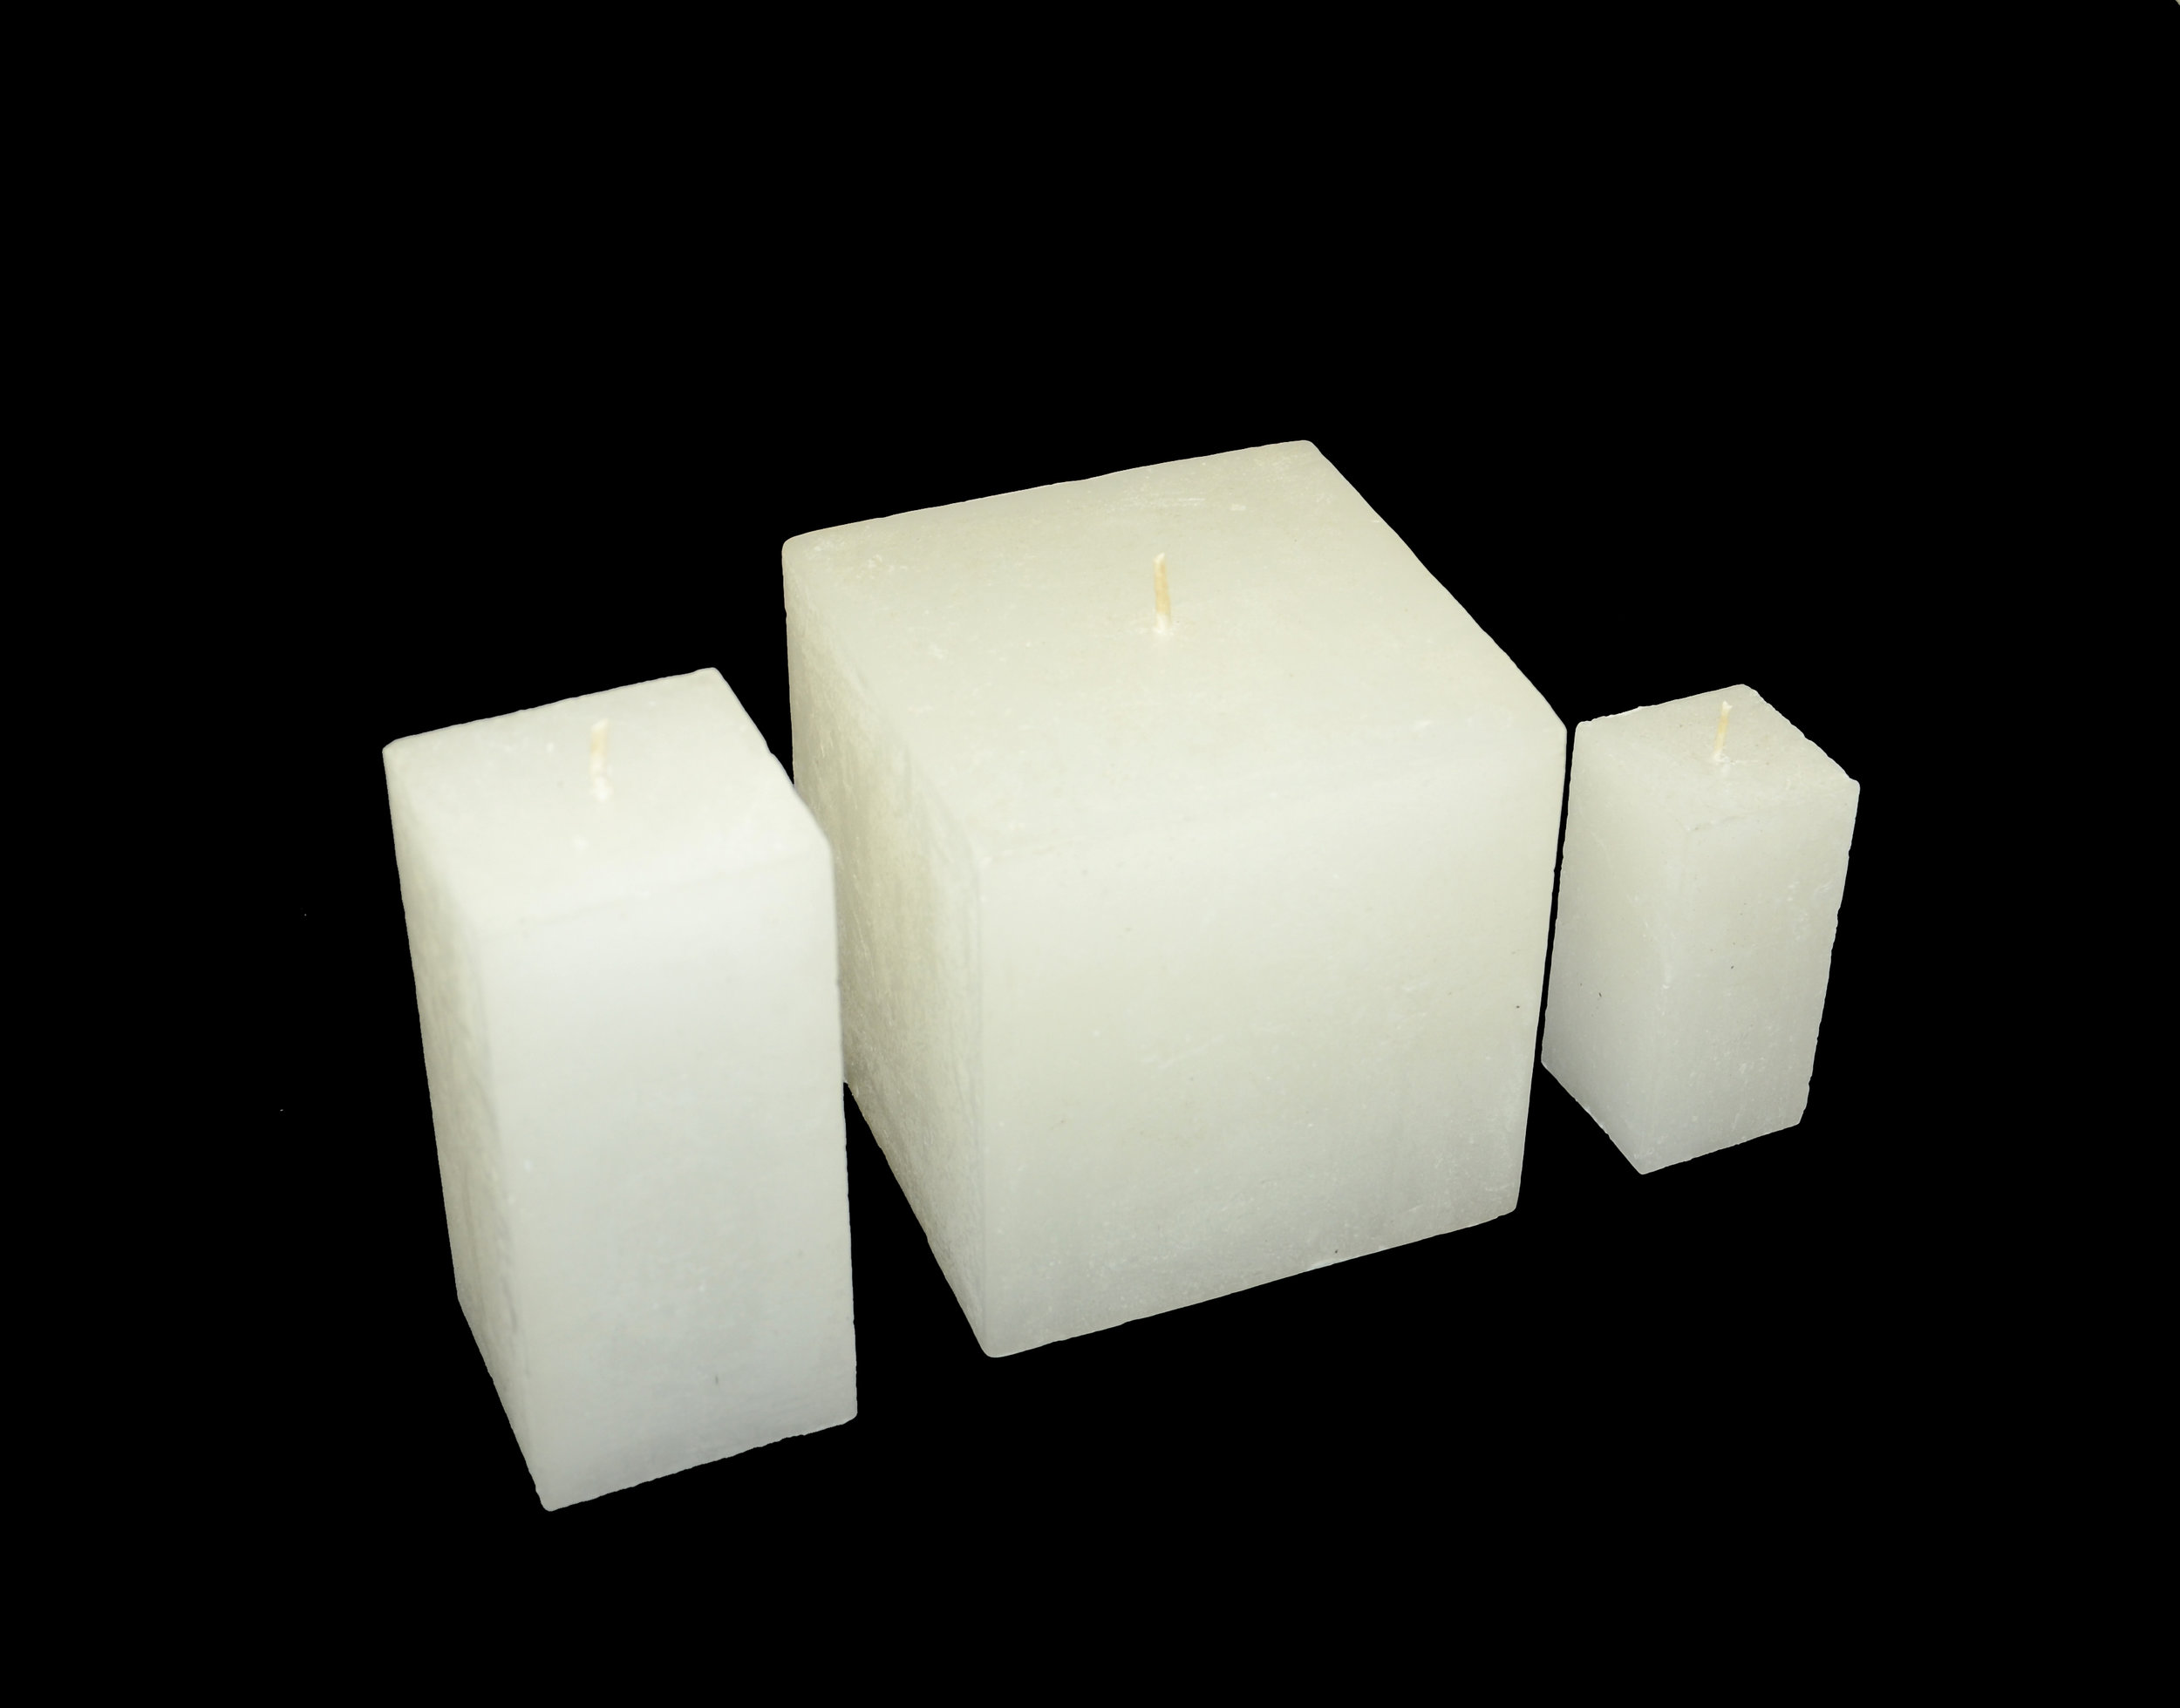 CUBE CANDLES